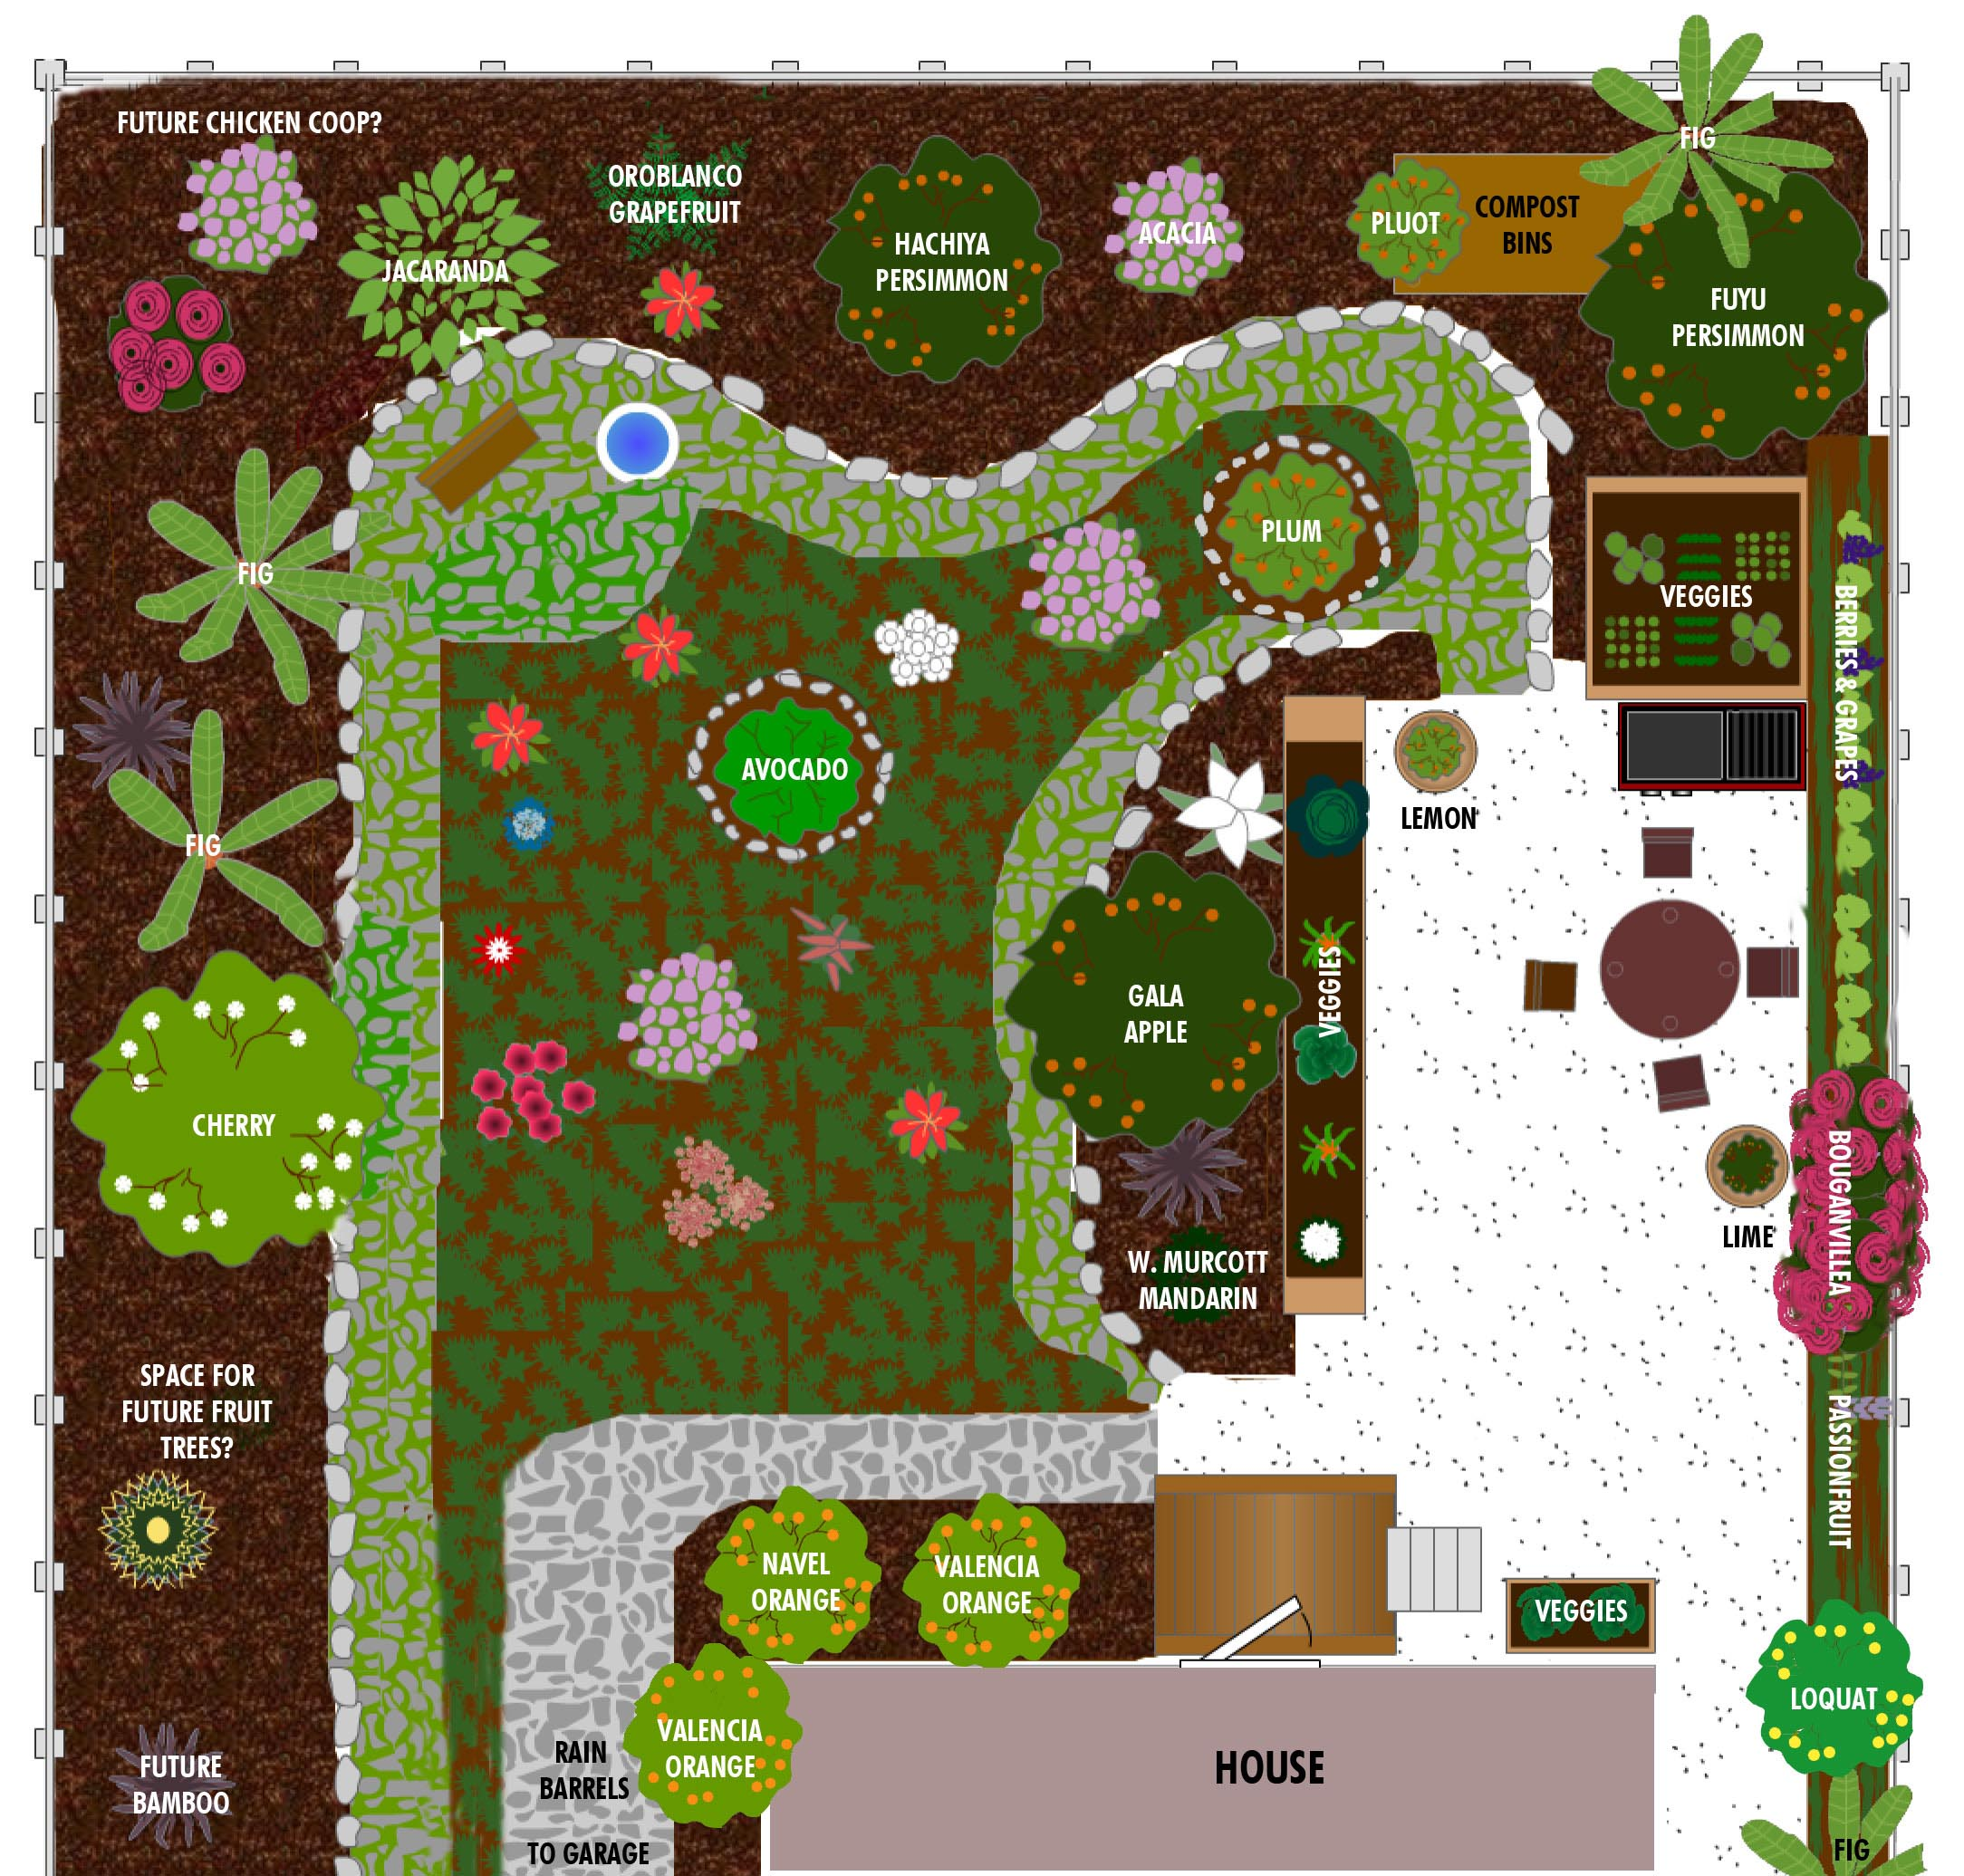 Bhg Better Homes And Gardens Plan A Garden Landscape Software Garden Design Ideas